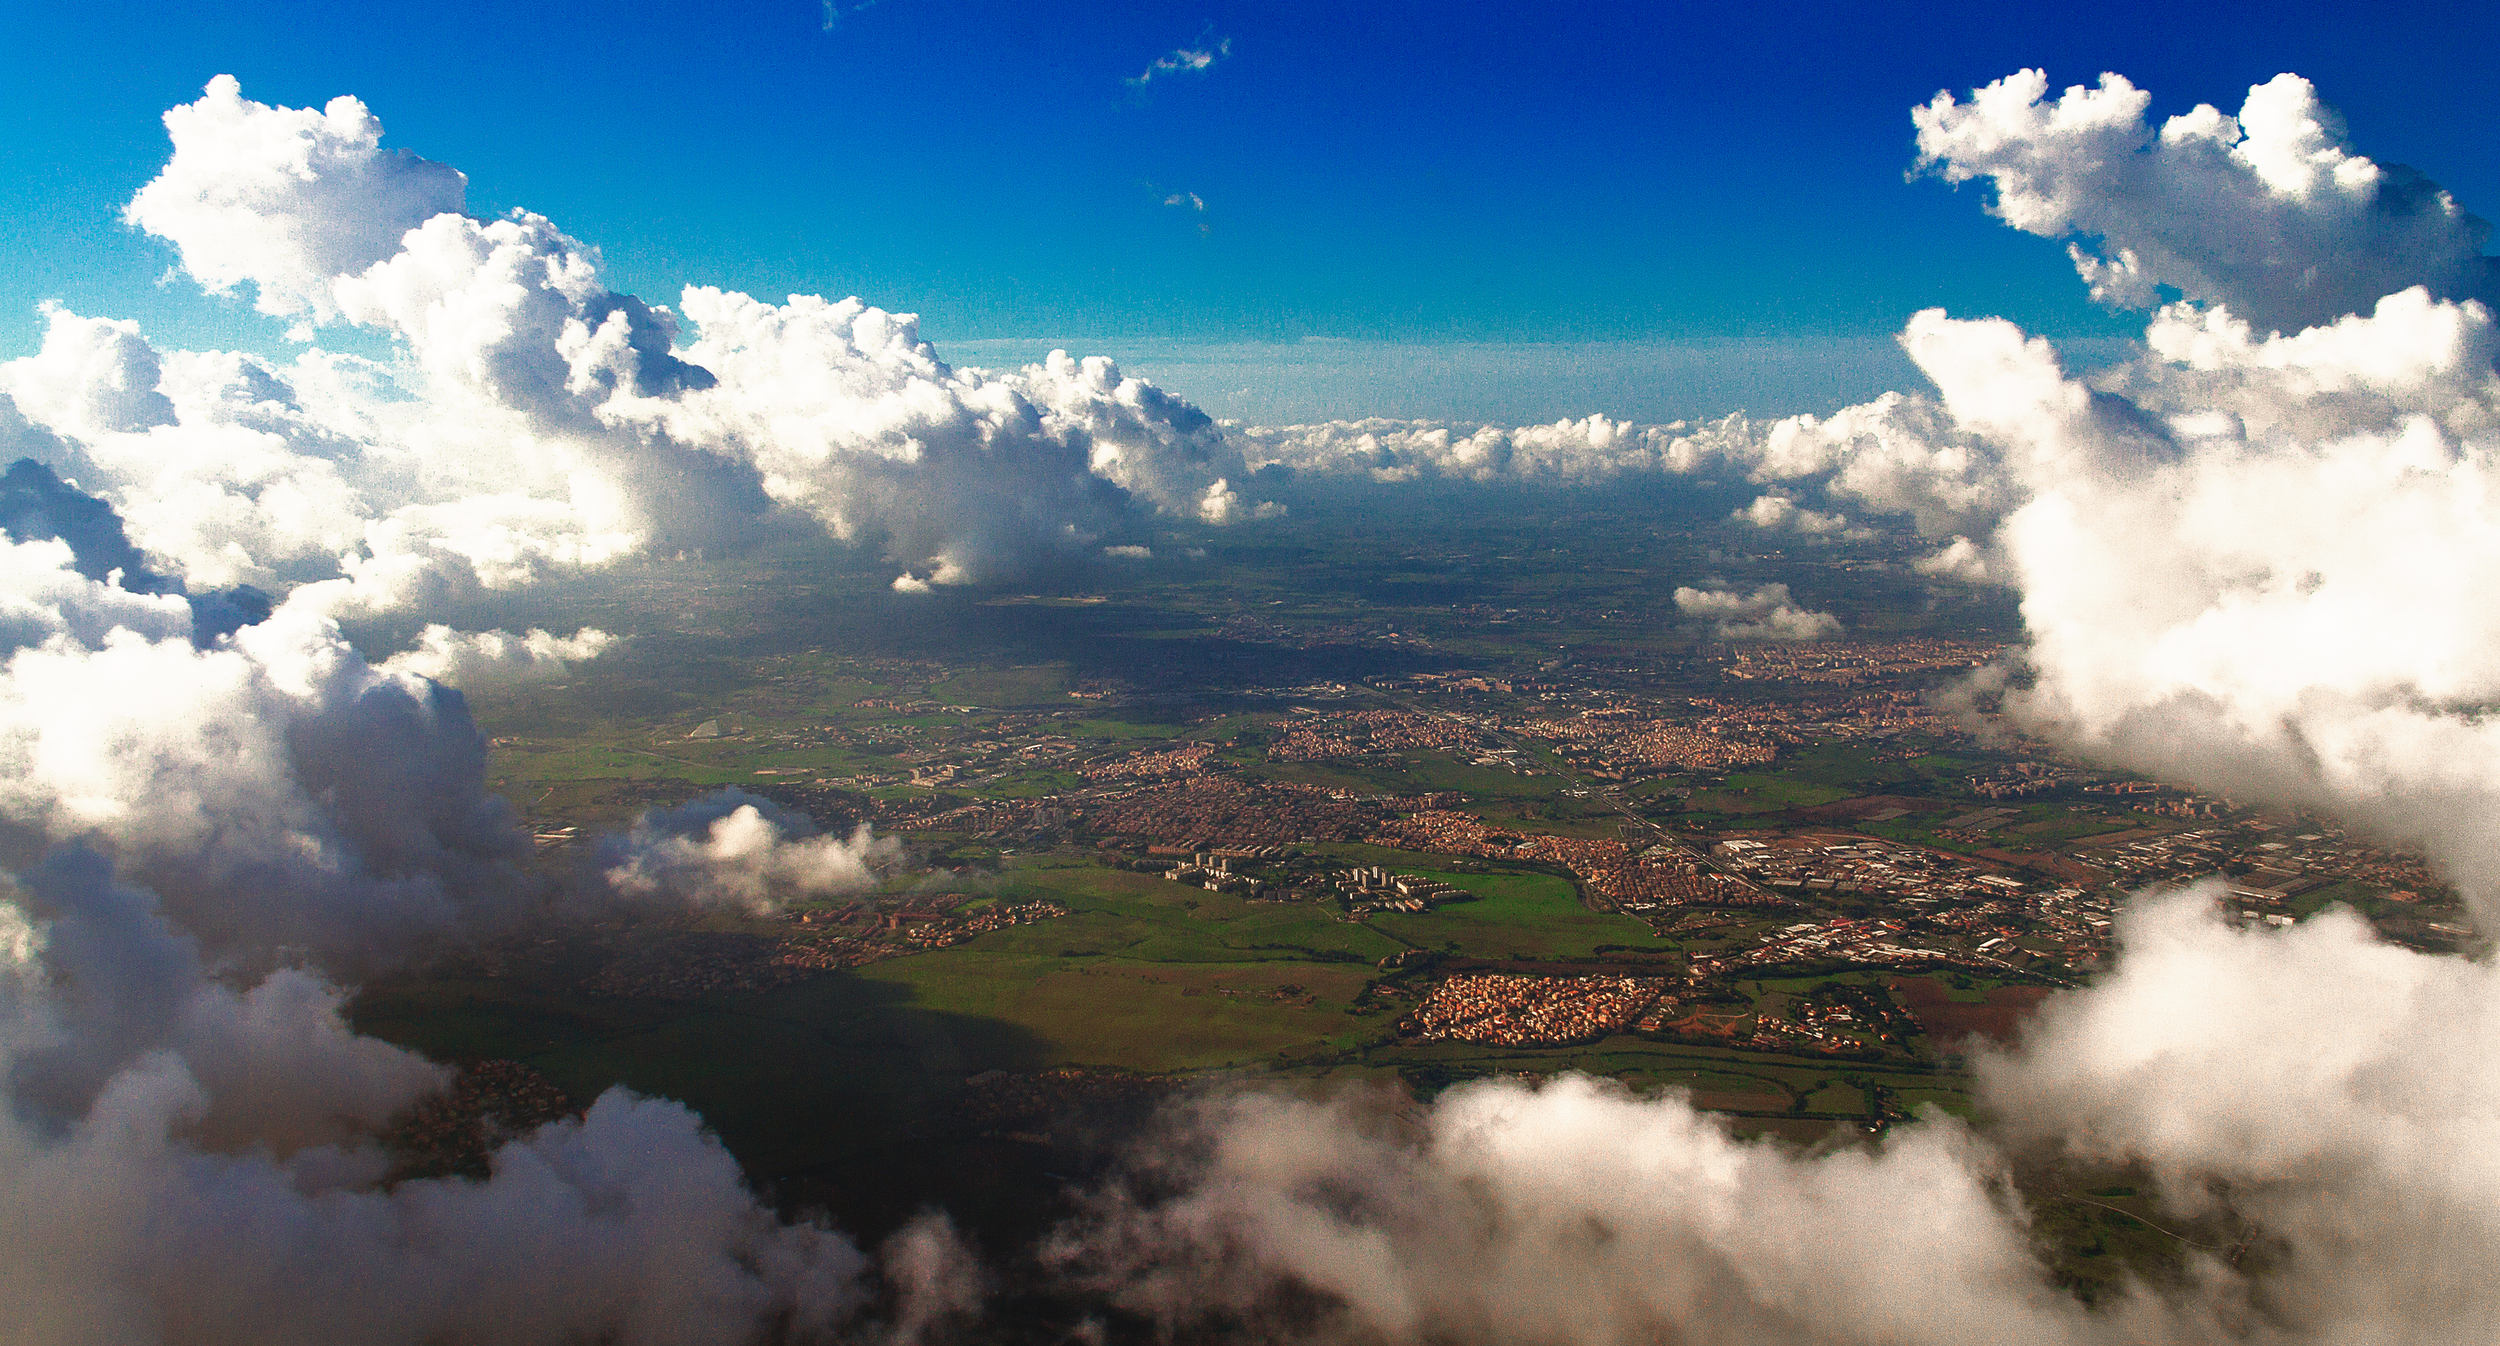 landscape___32____airplane_window_view__3_by_the_french_monkey-d9cgcpy.jpg